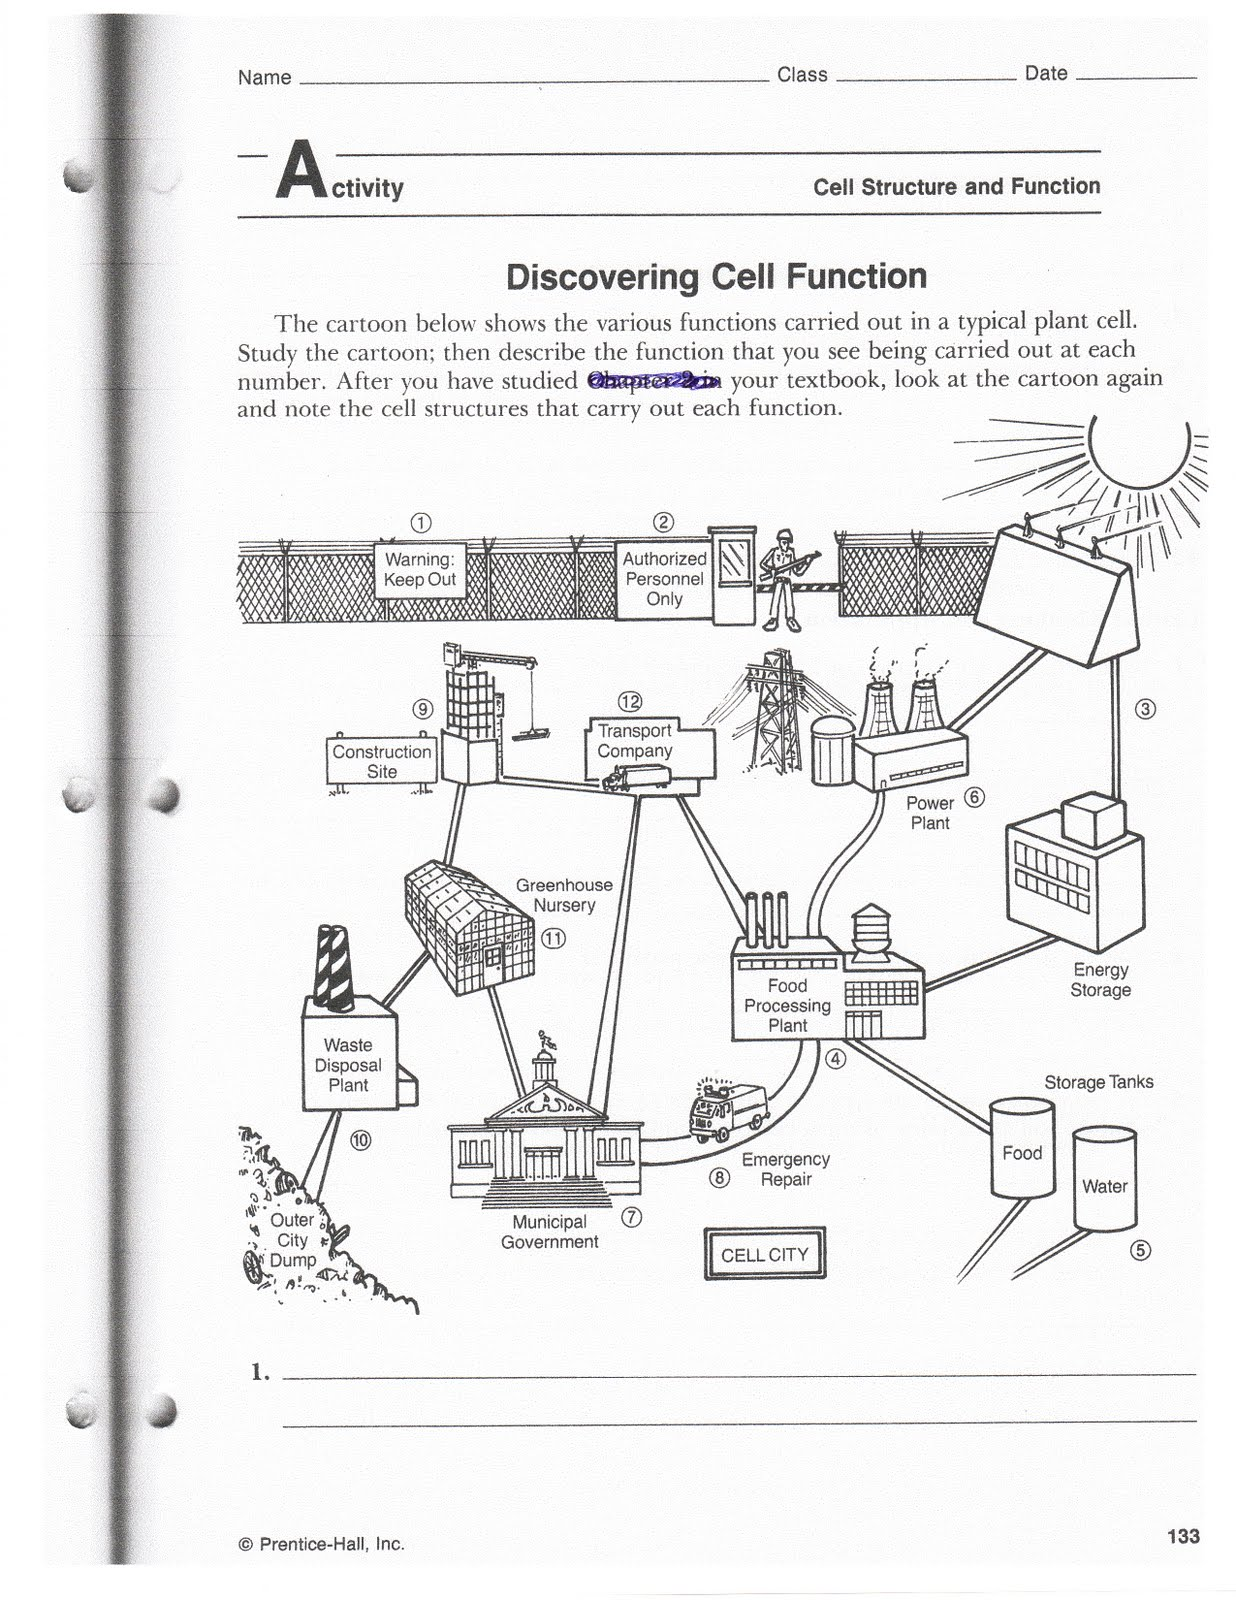 Drden 039 S Science Class April Cell Cityogy Free Worksheets Samples